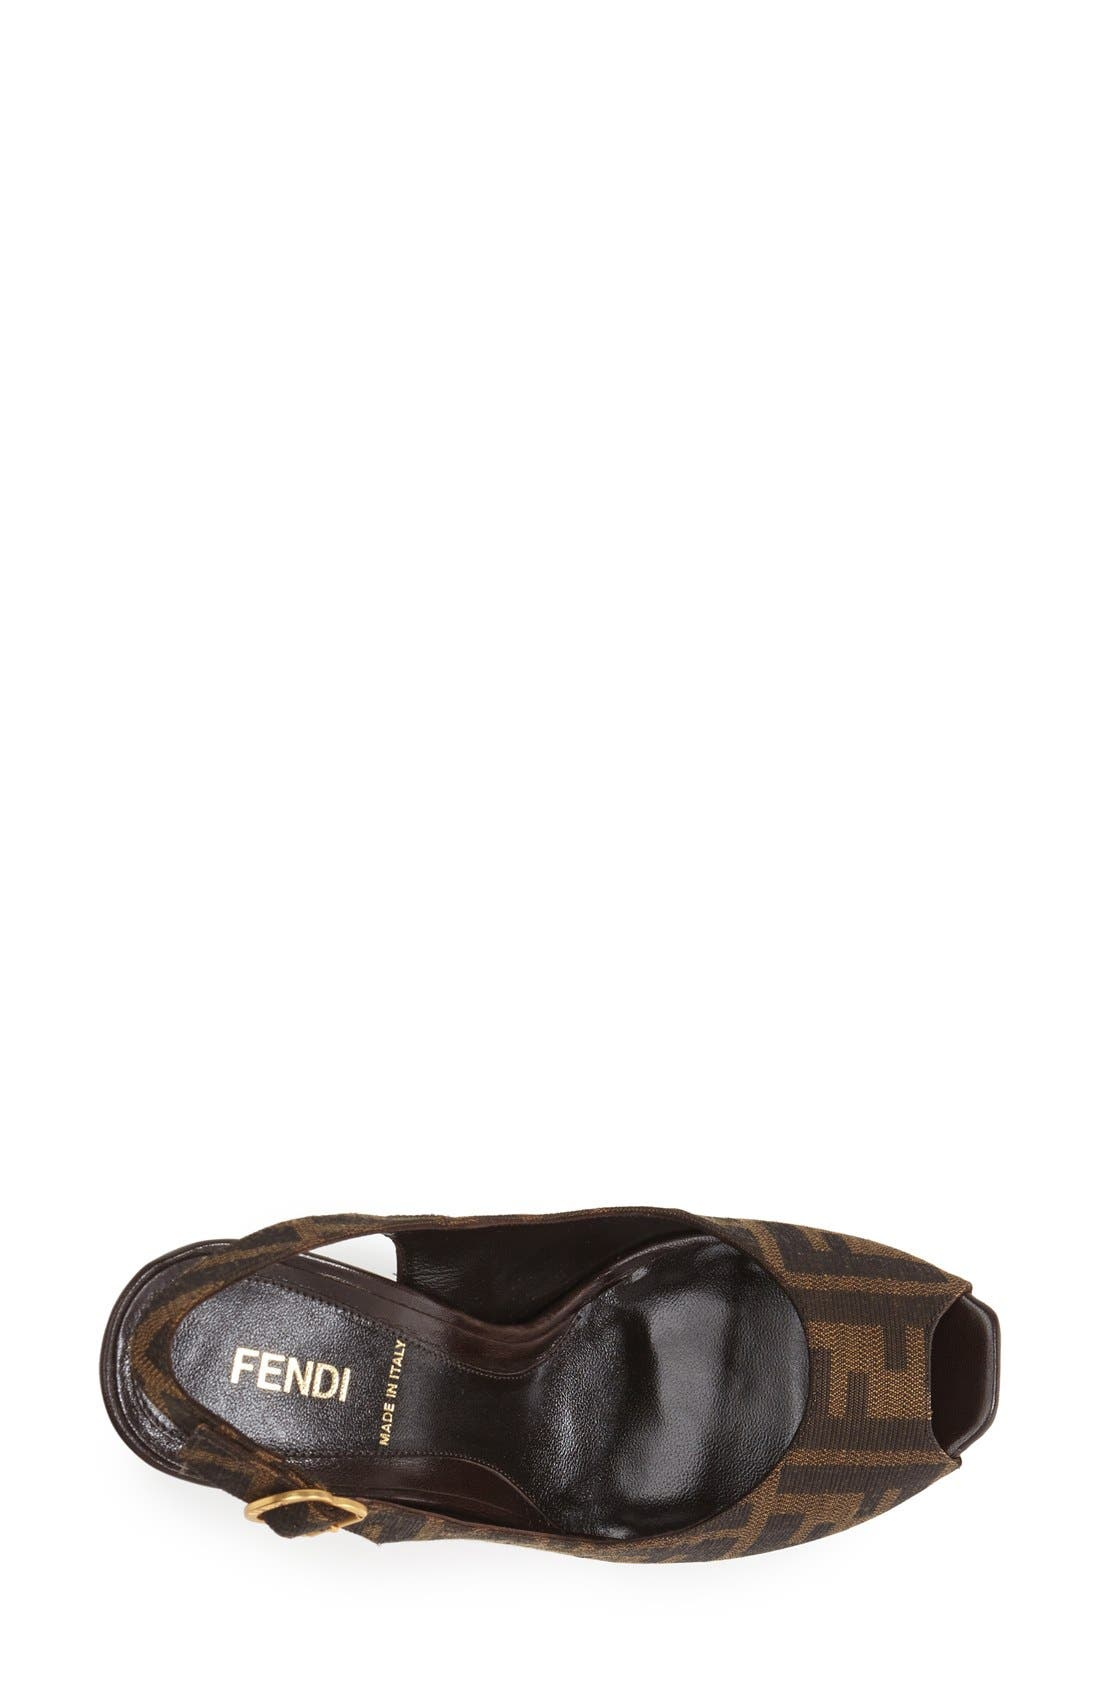 Alternate Image 3  - Fendi 'The Fendista' Platform Pump